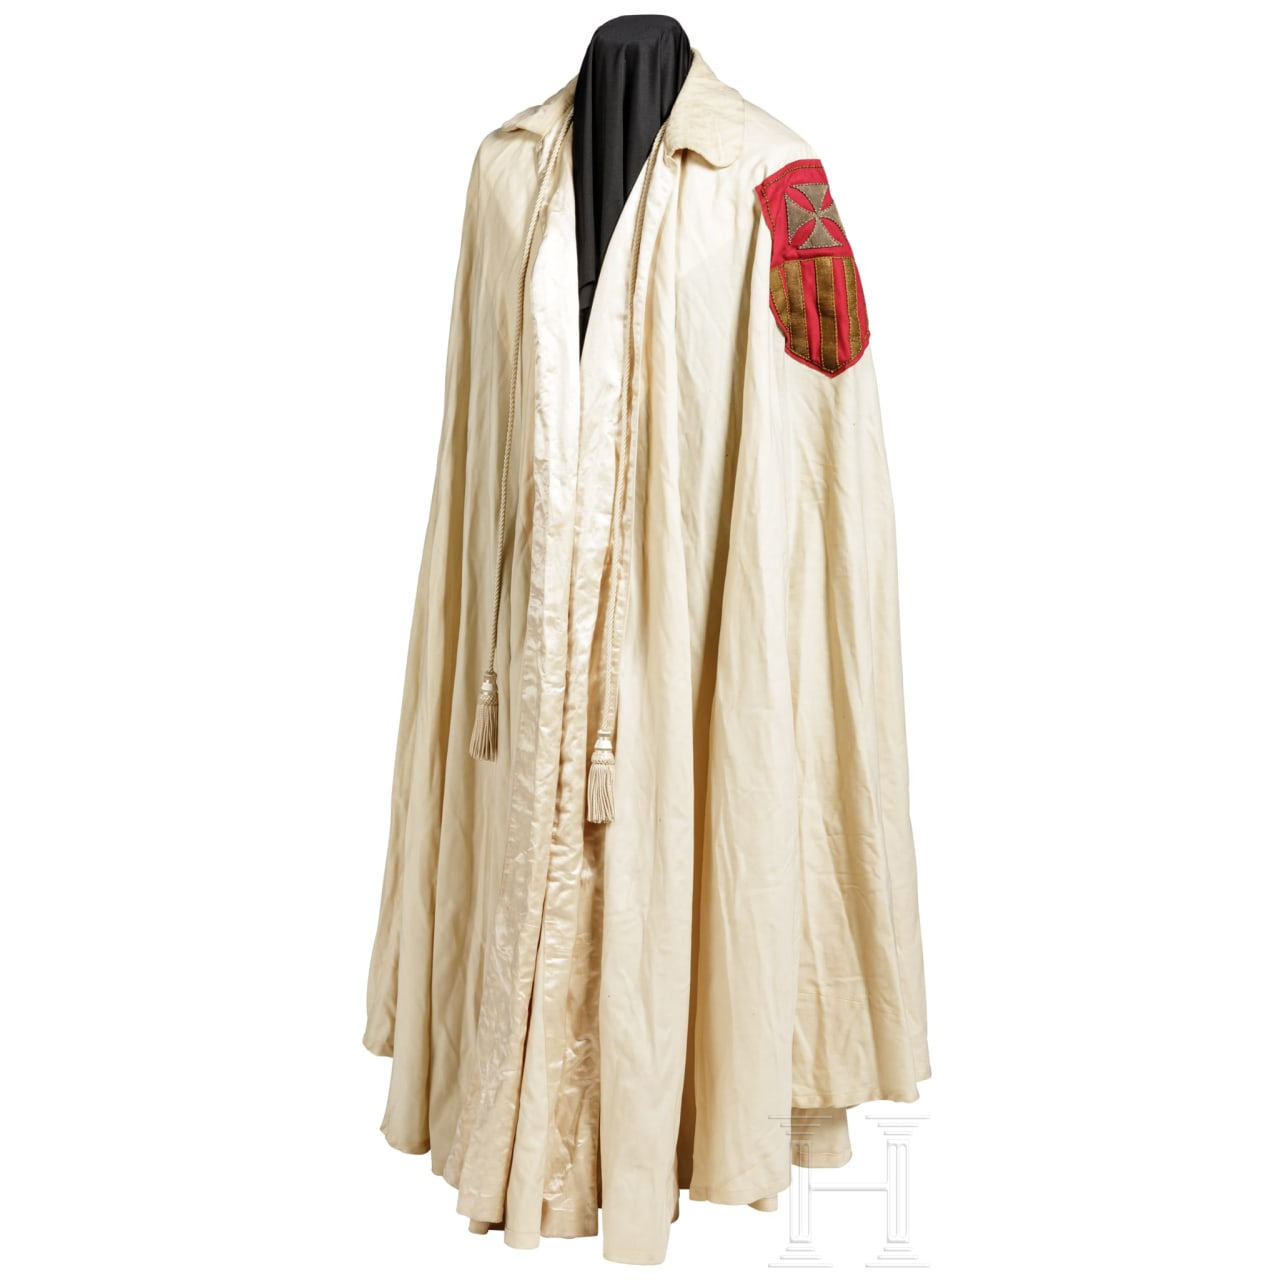 A Vatican cloak of an order of knights, 20th century